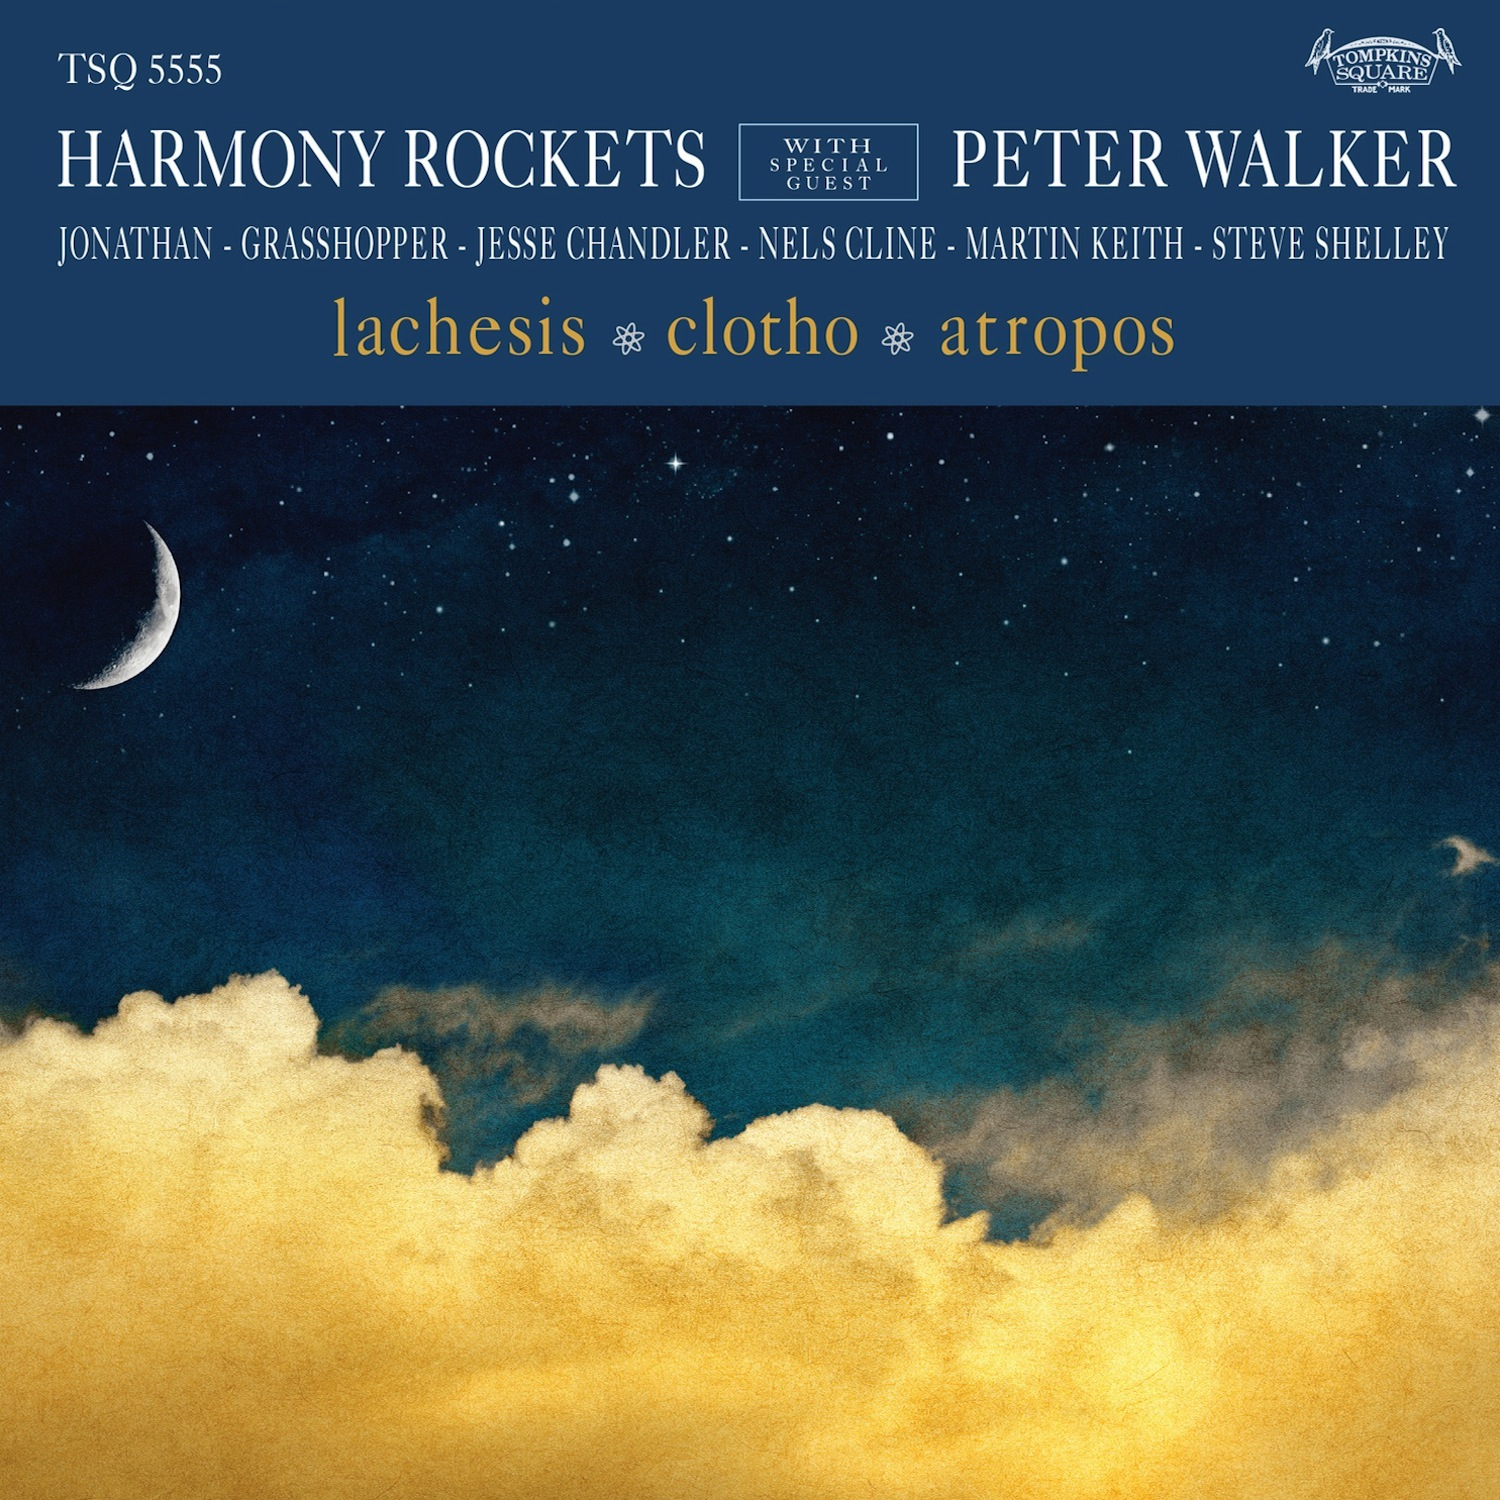 Harmony Rockets with Special Guest Peter Walker